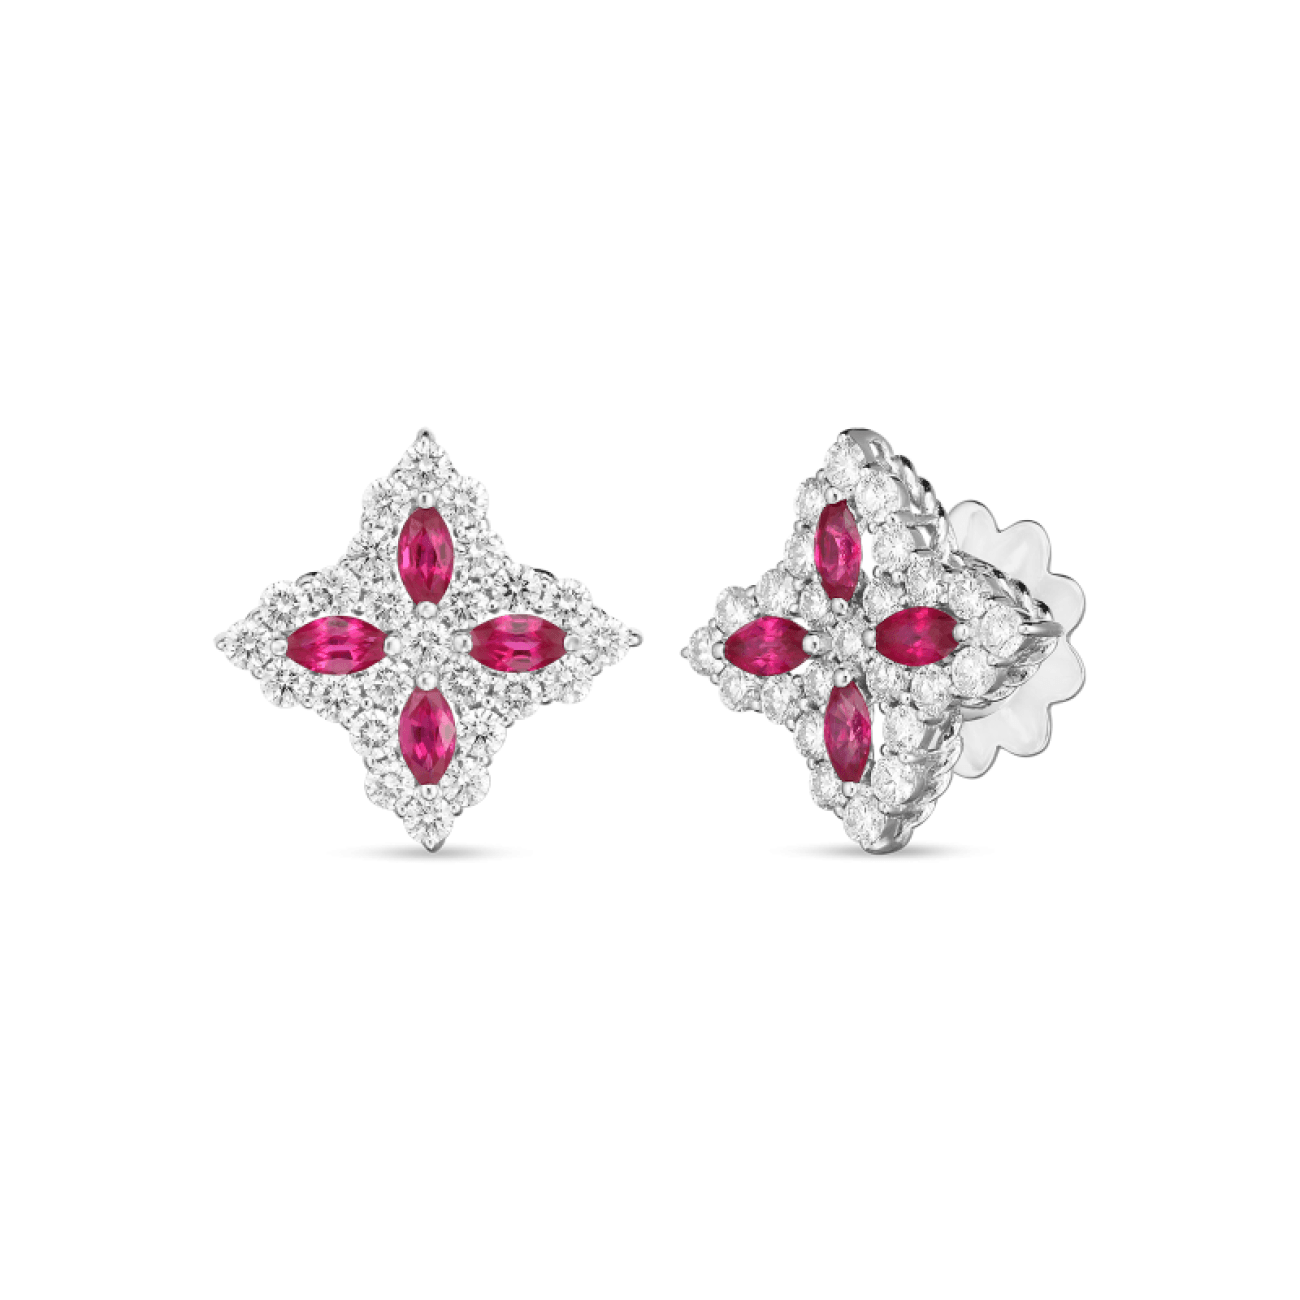 Roberto Coin Jewelry - 18K GOLD DIA & RUBY PRINCESS FLOWER MEDIUM SIZE STUD EARRING | Manfredi Jewels